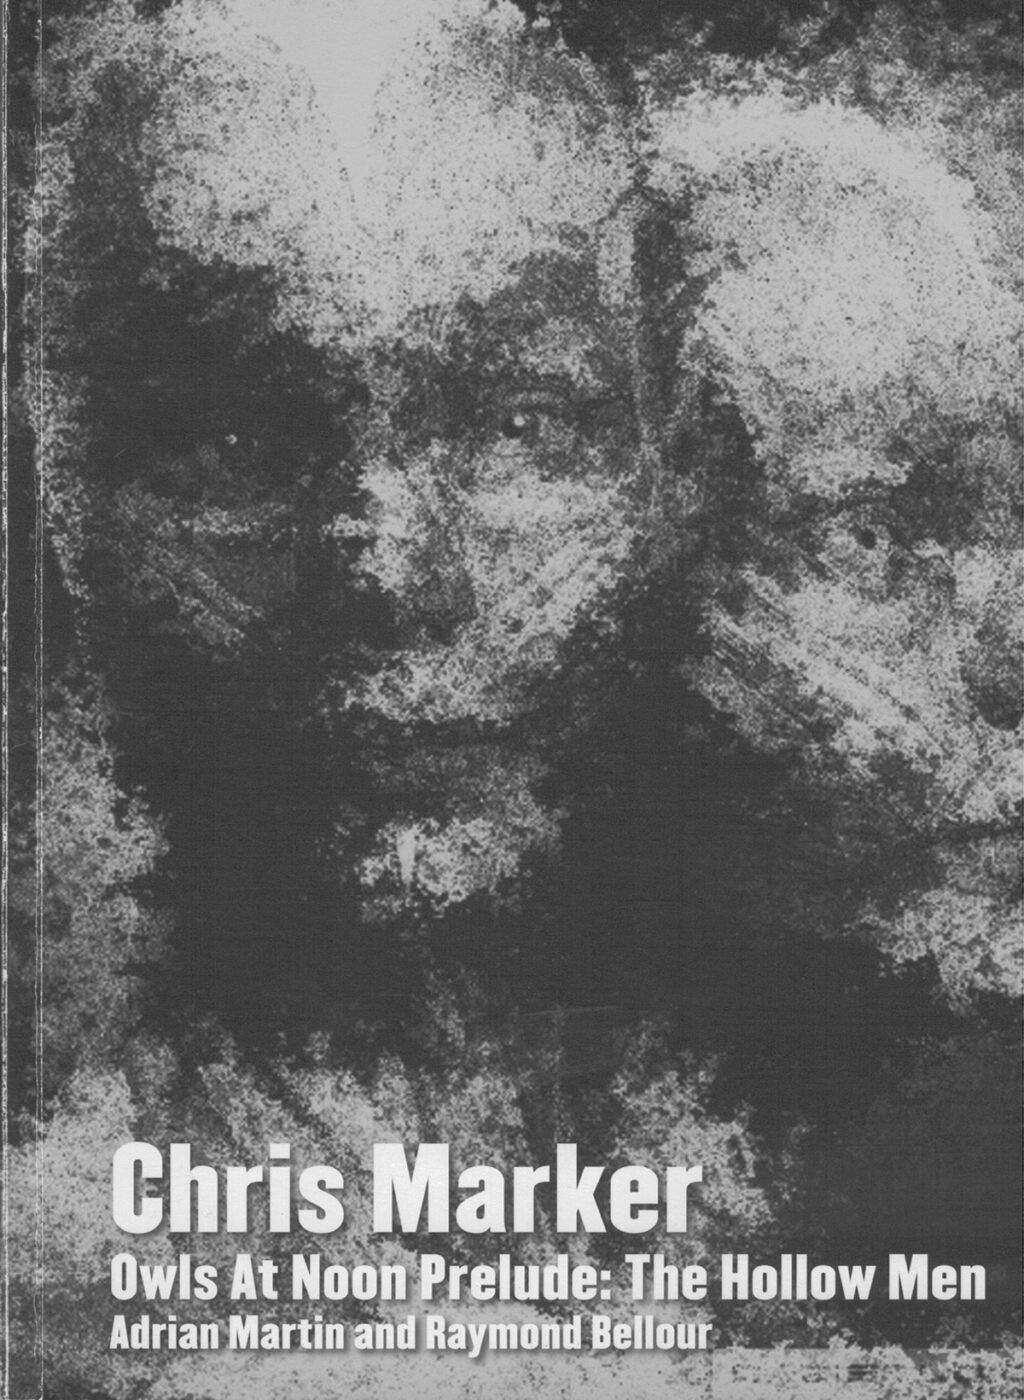 Chris Marker: Owls At Noon Prelude: The Hollow Men by Adrian Martin and Raymond Bellour